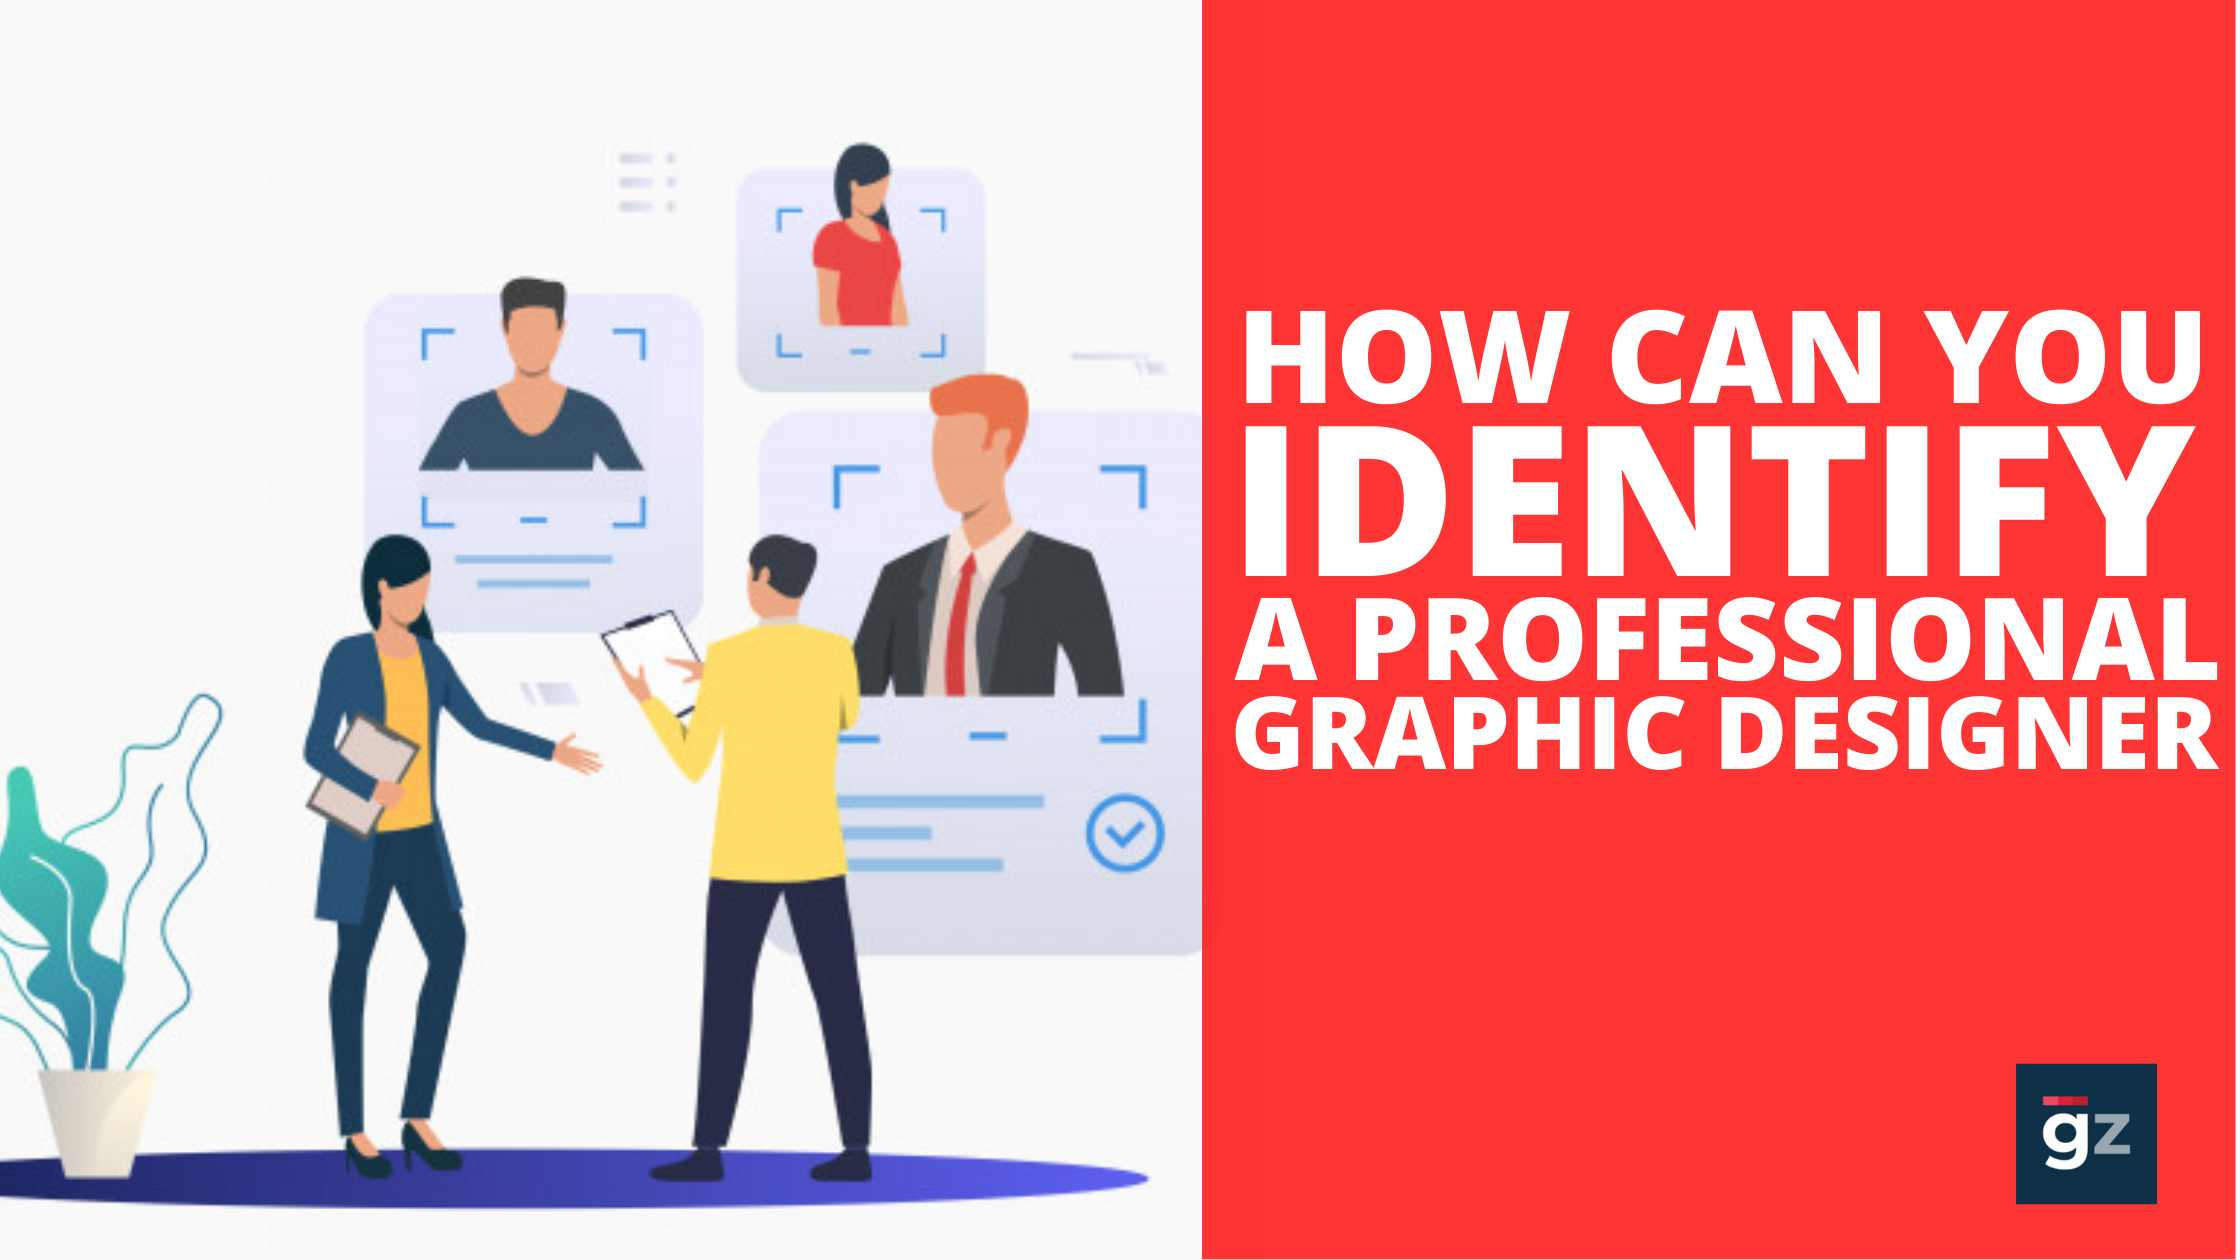 How Can You Identify A Professional Graphic Designer?